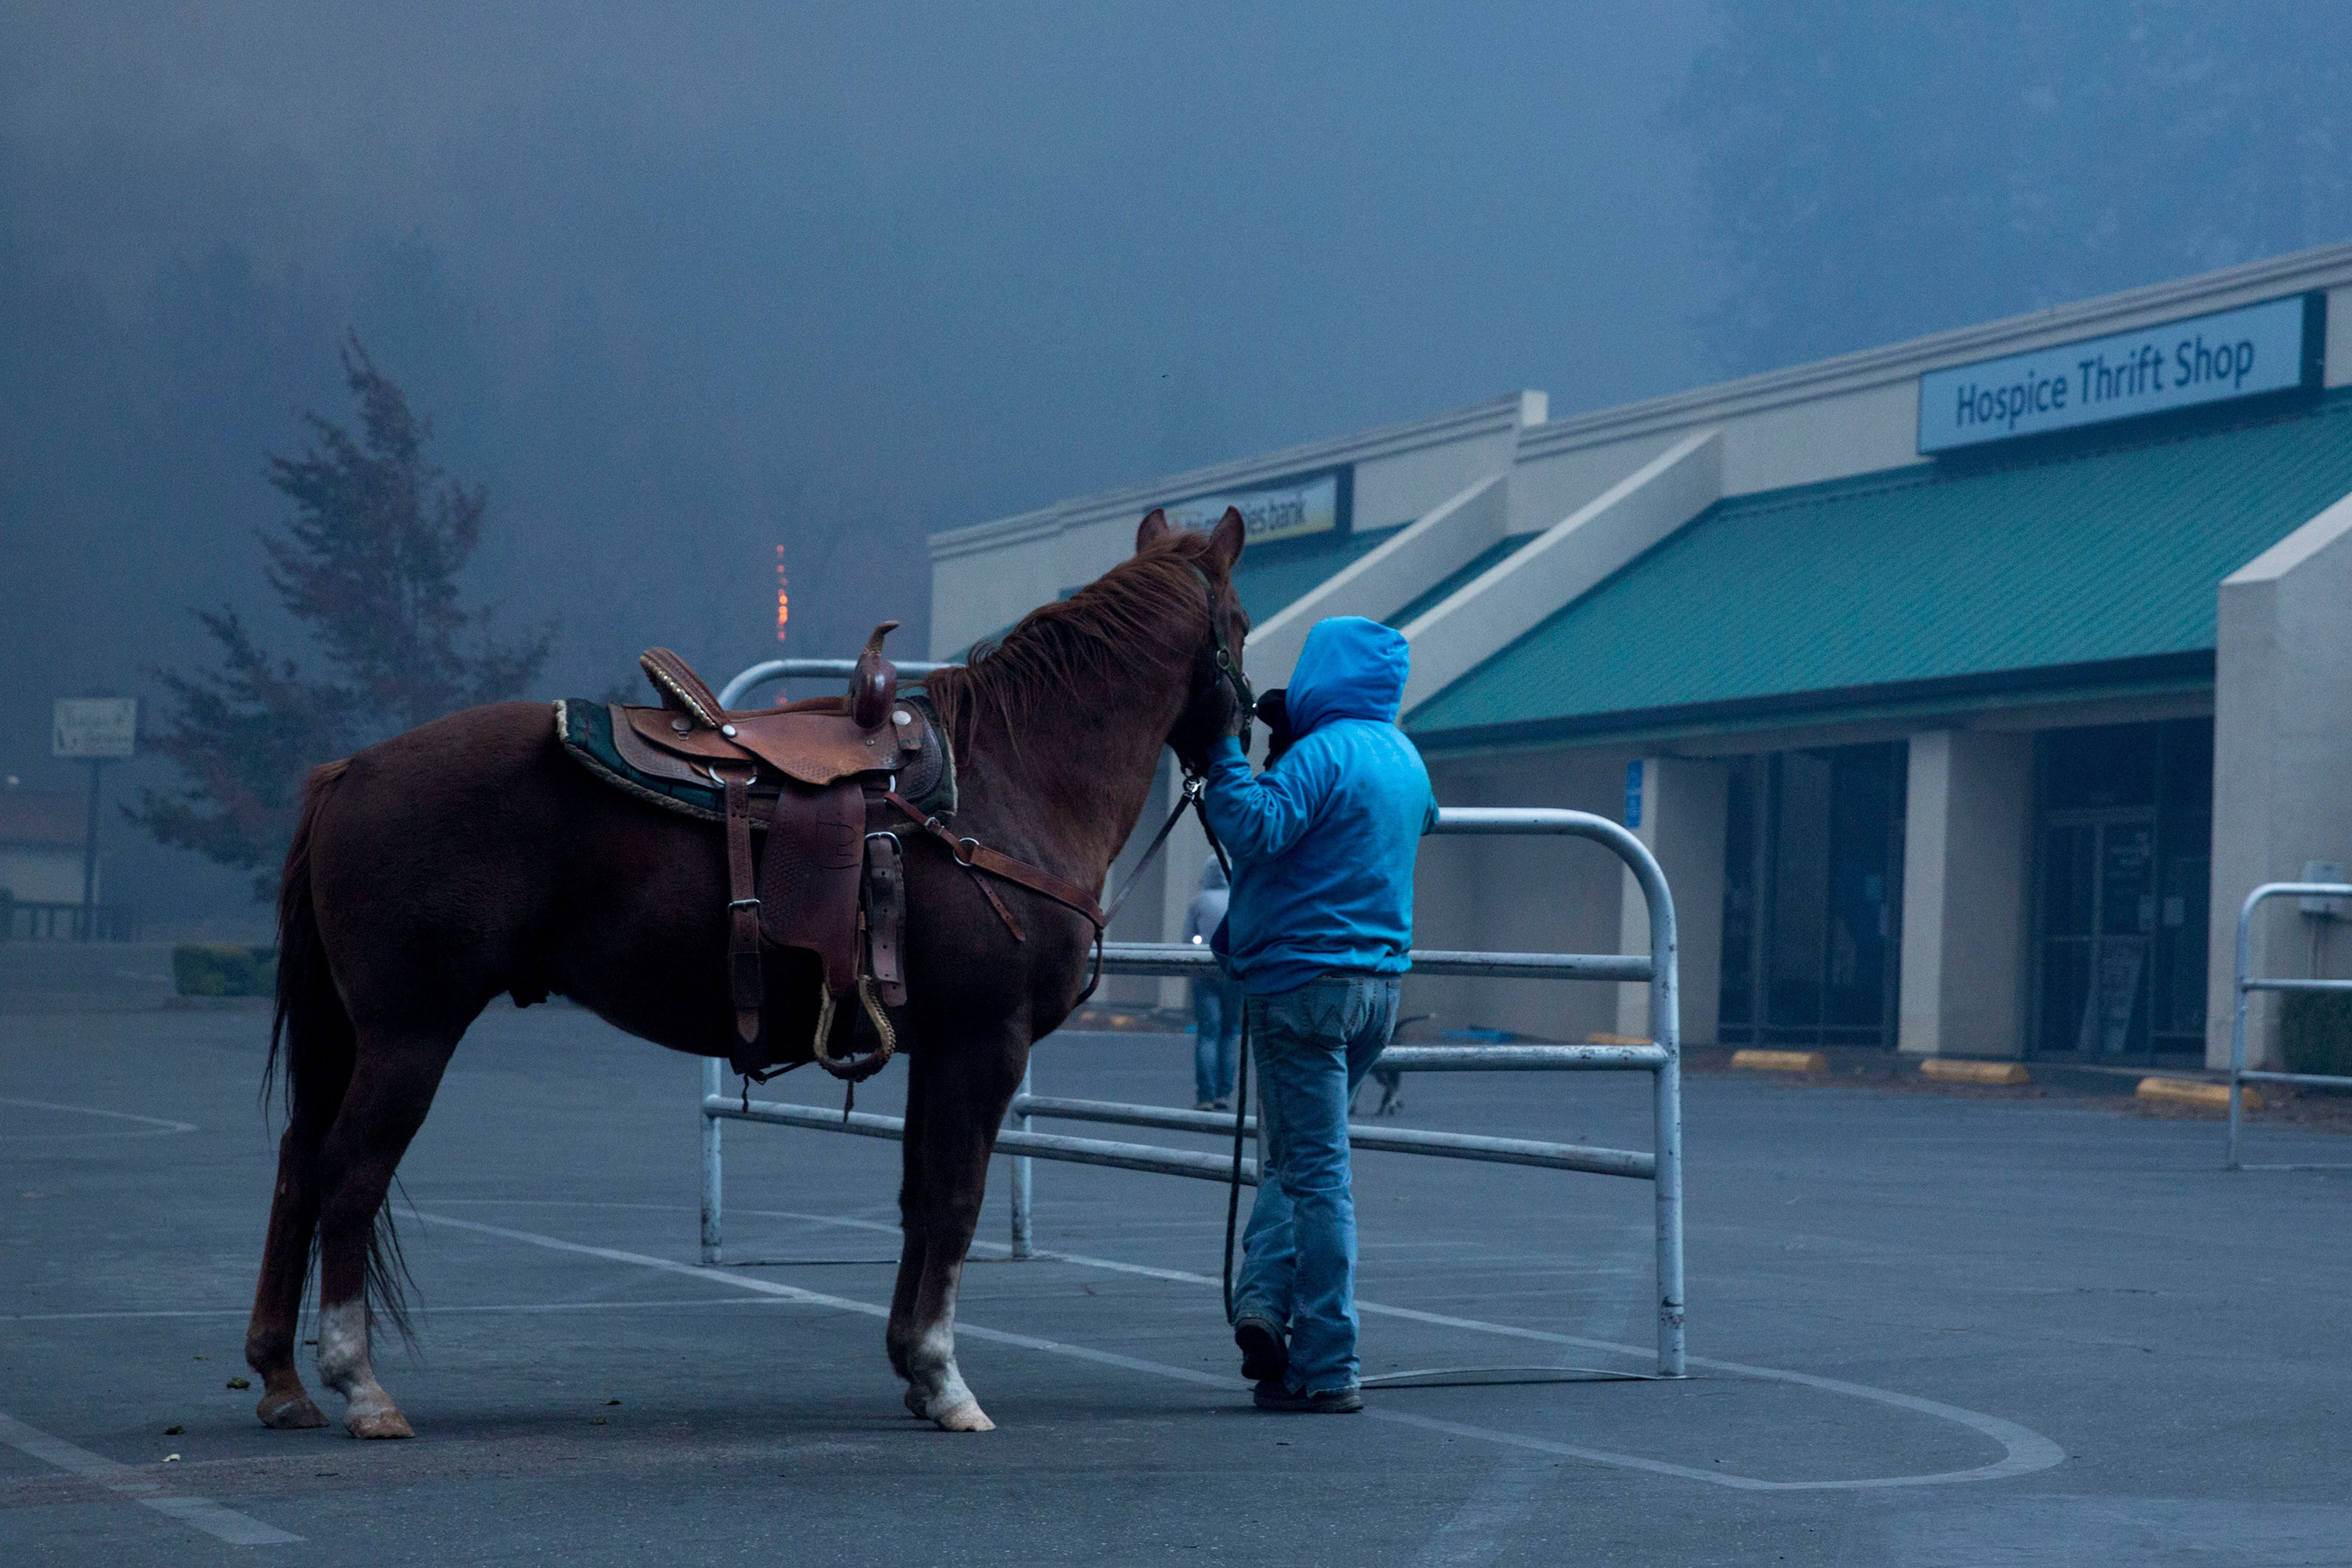 Hillery Johnson stands with her horse Augie, after she lost everything except the clothes on her back and her horse, watches as the Camp Fire burns out of control through Paradise, Calif. on Nov. 8.